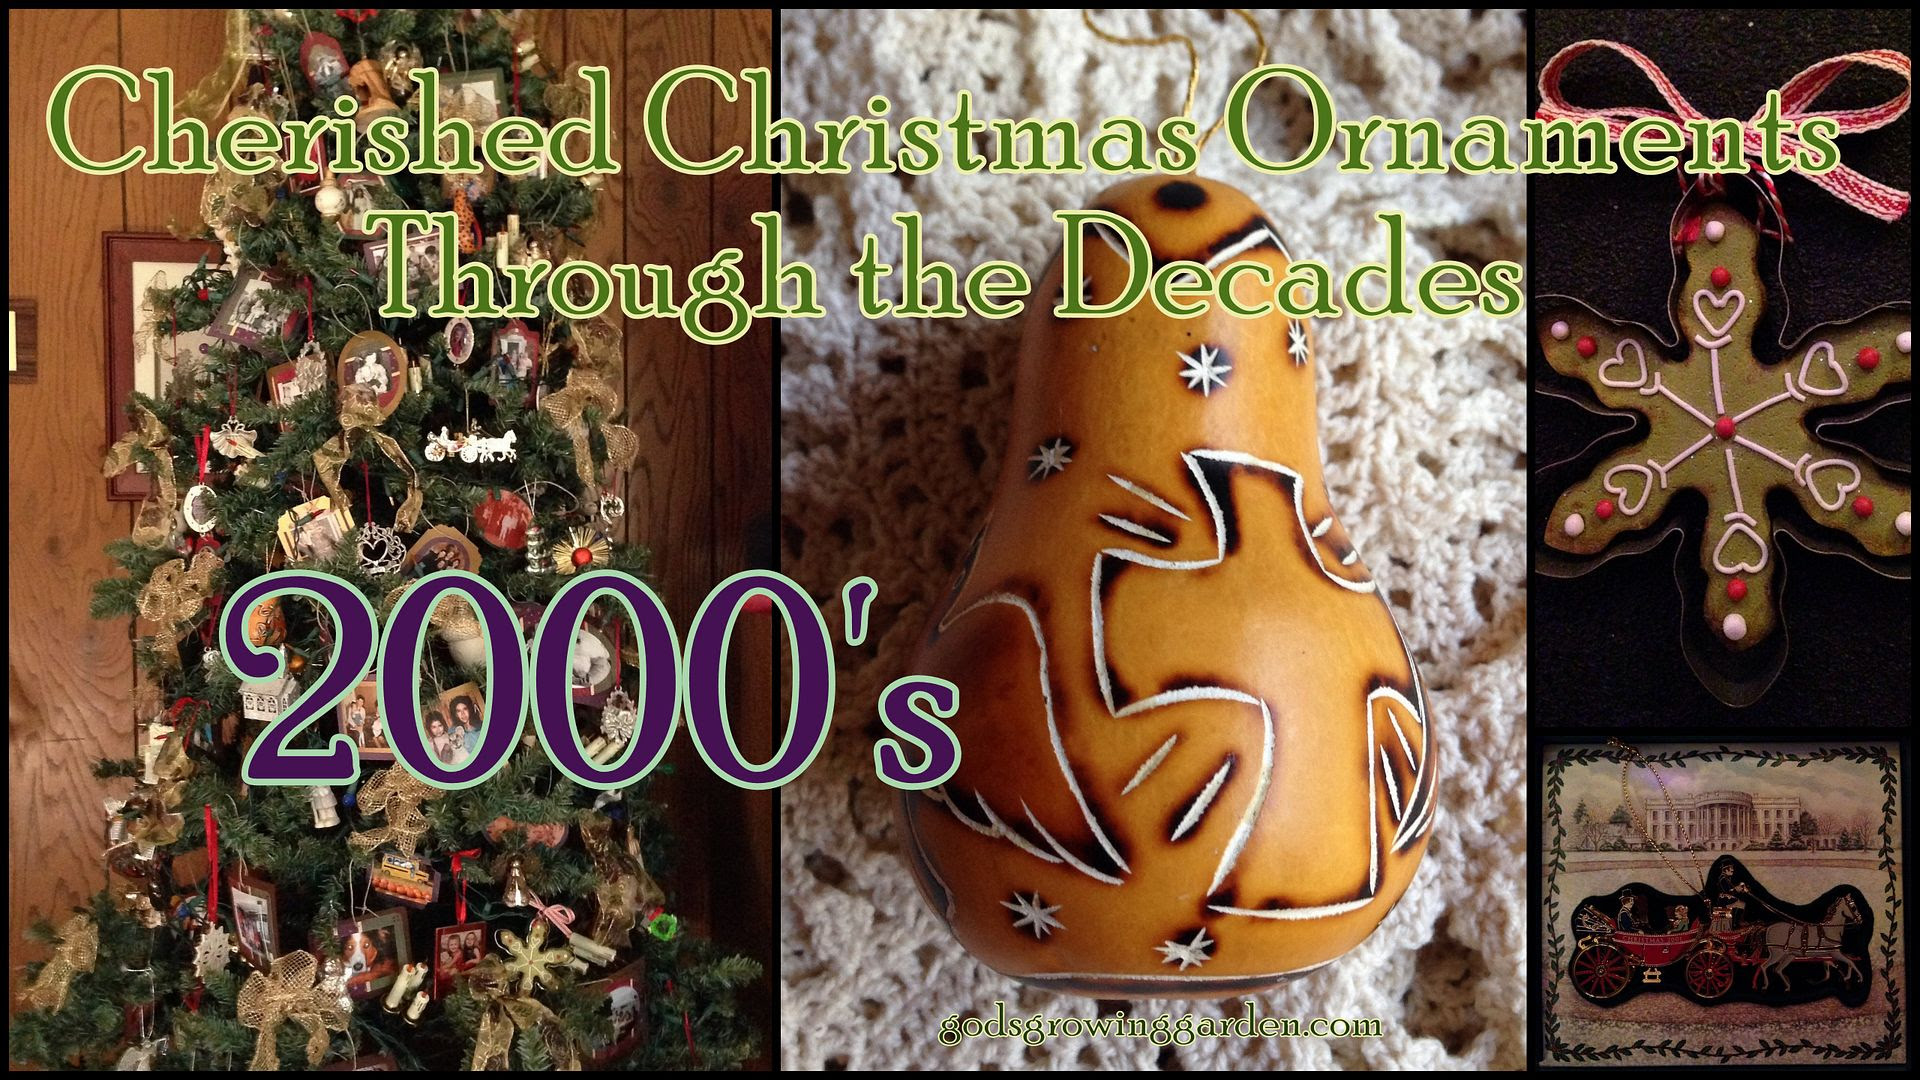 by Angie Ouellette-Tower for http://www.godsgrowinggarden.com/ photo Ornaments-004_zpstulm7m9o.jpg